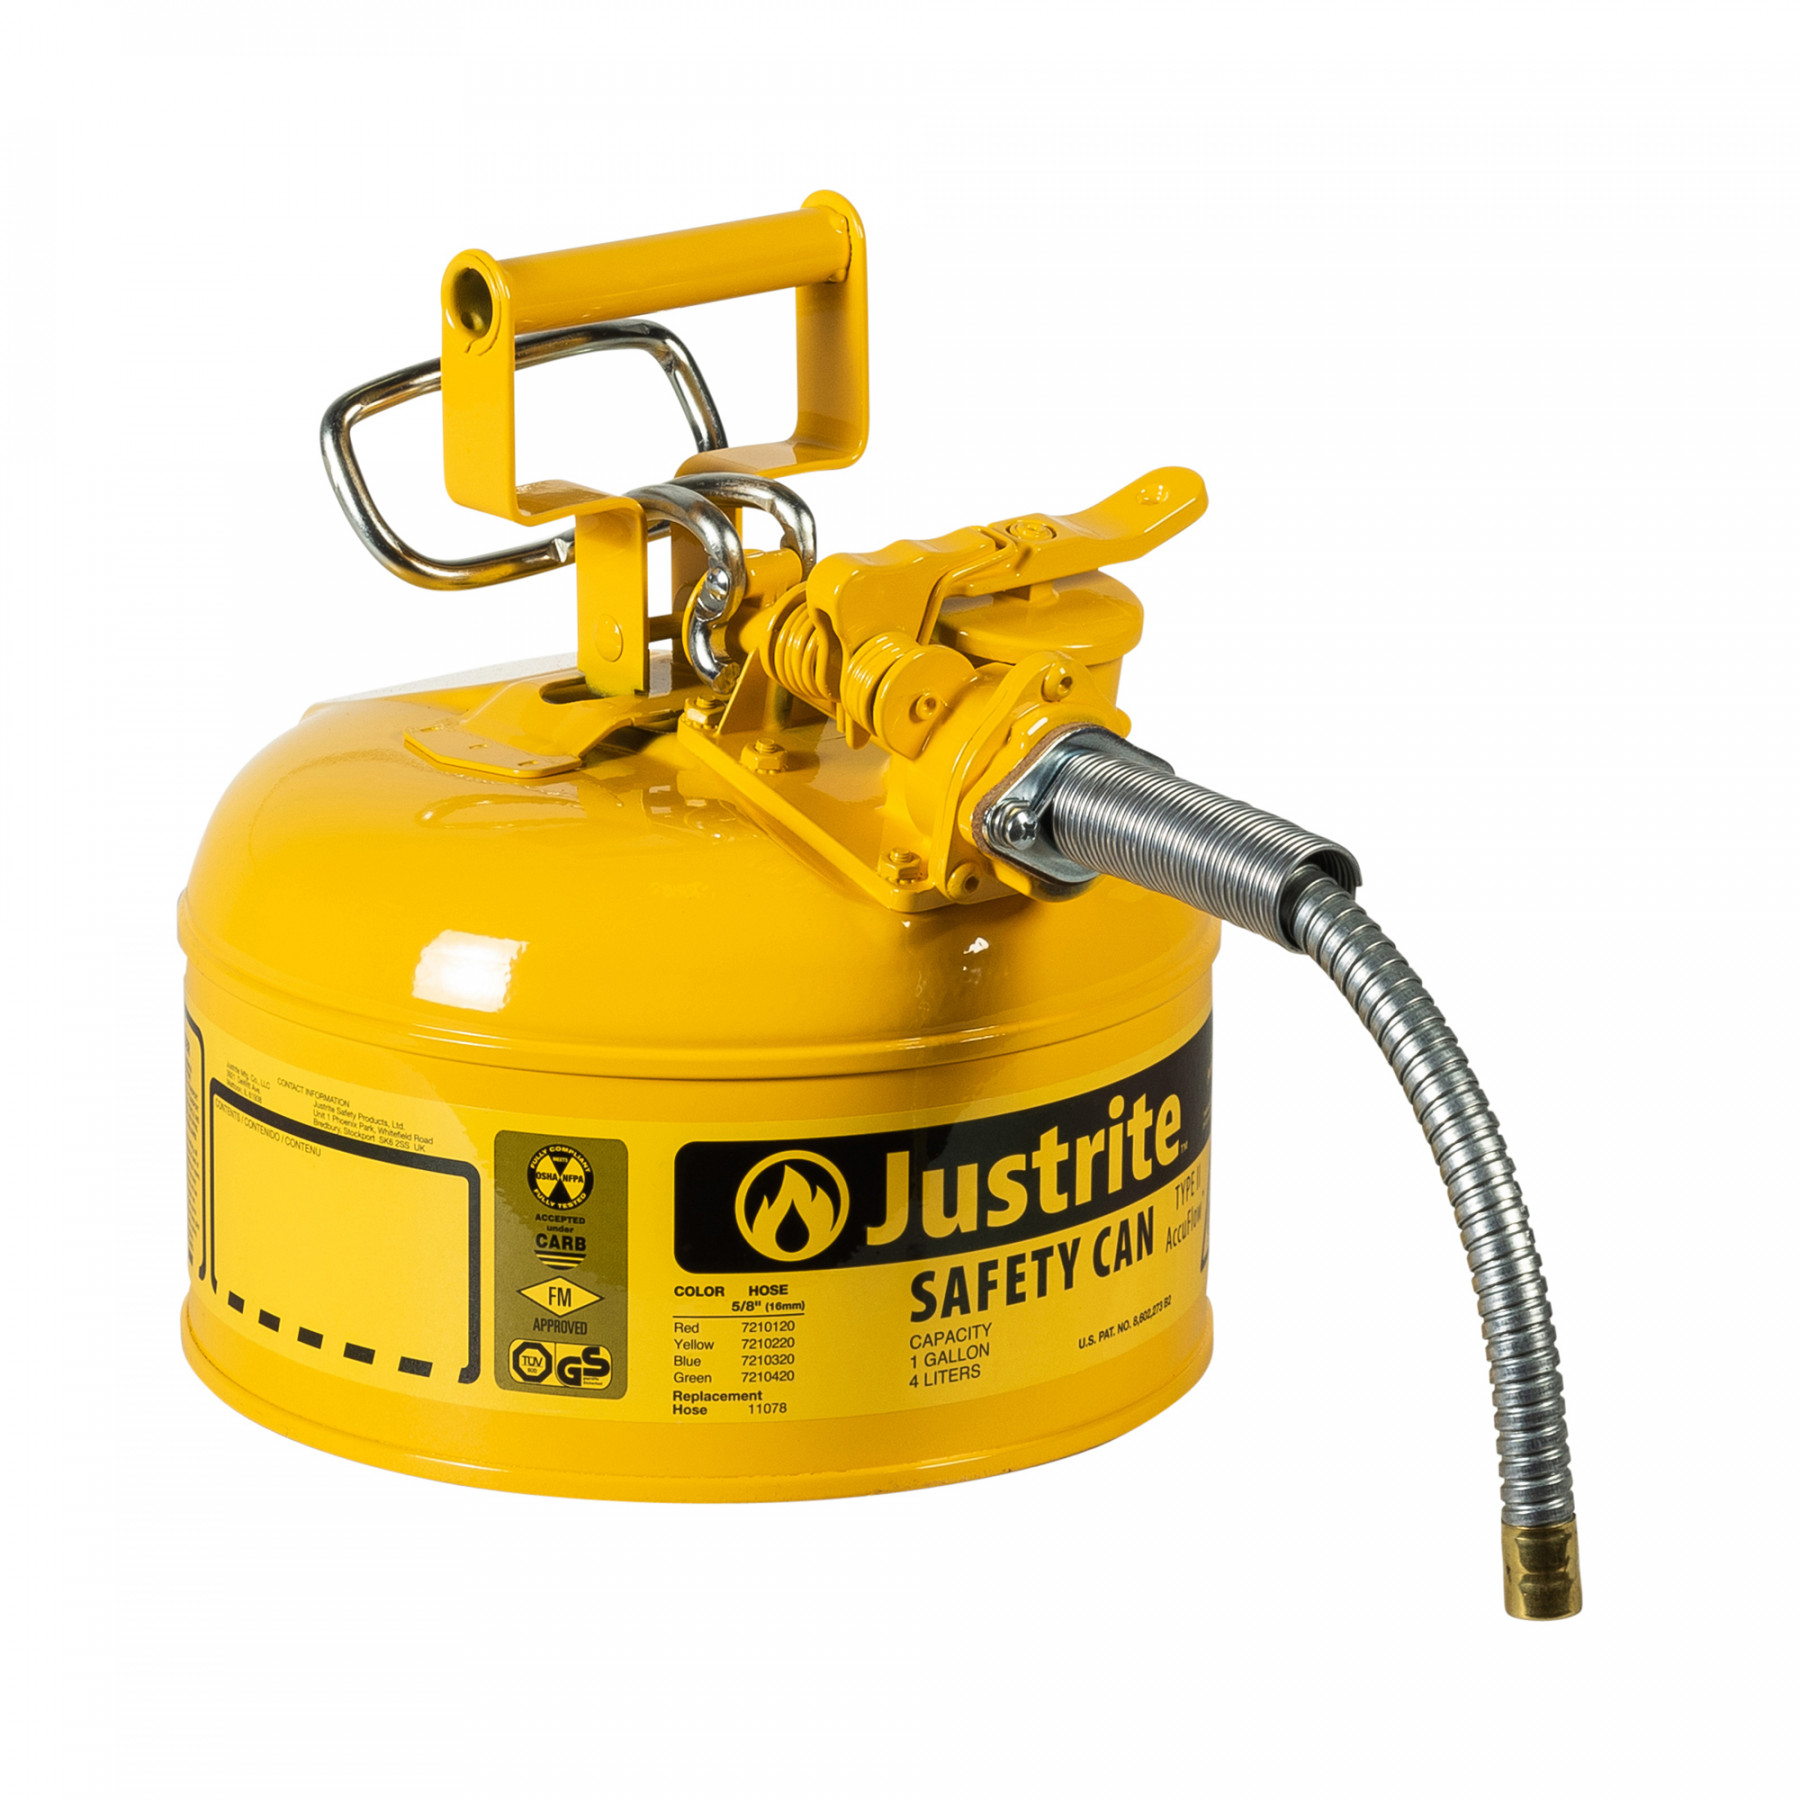 7210220_type-2-safety-can-1-gallon-yellow_justrite_1TSCGz0k2D56LT